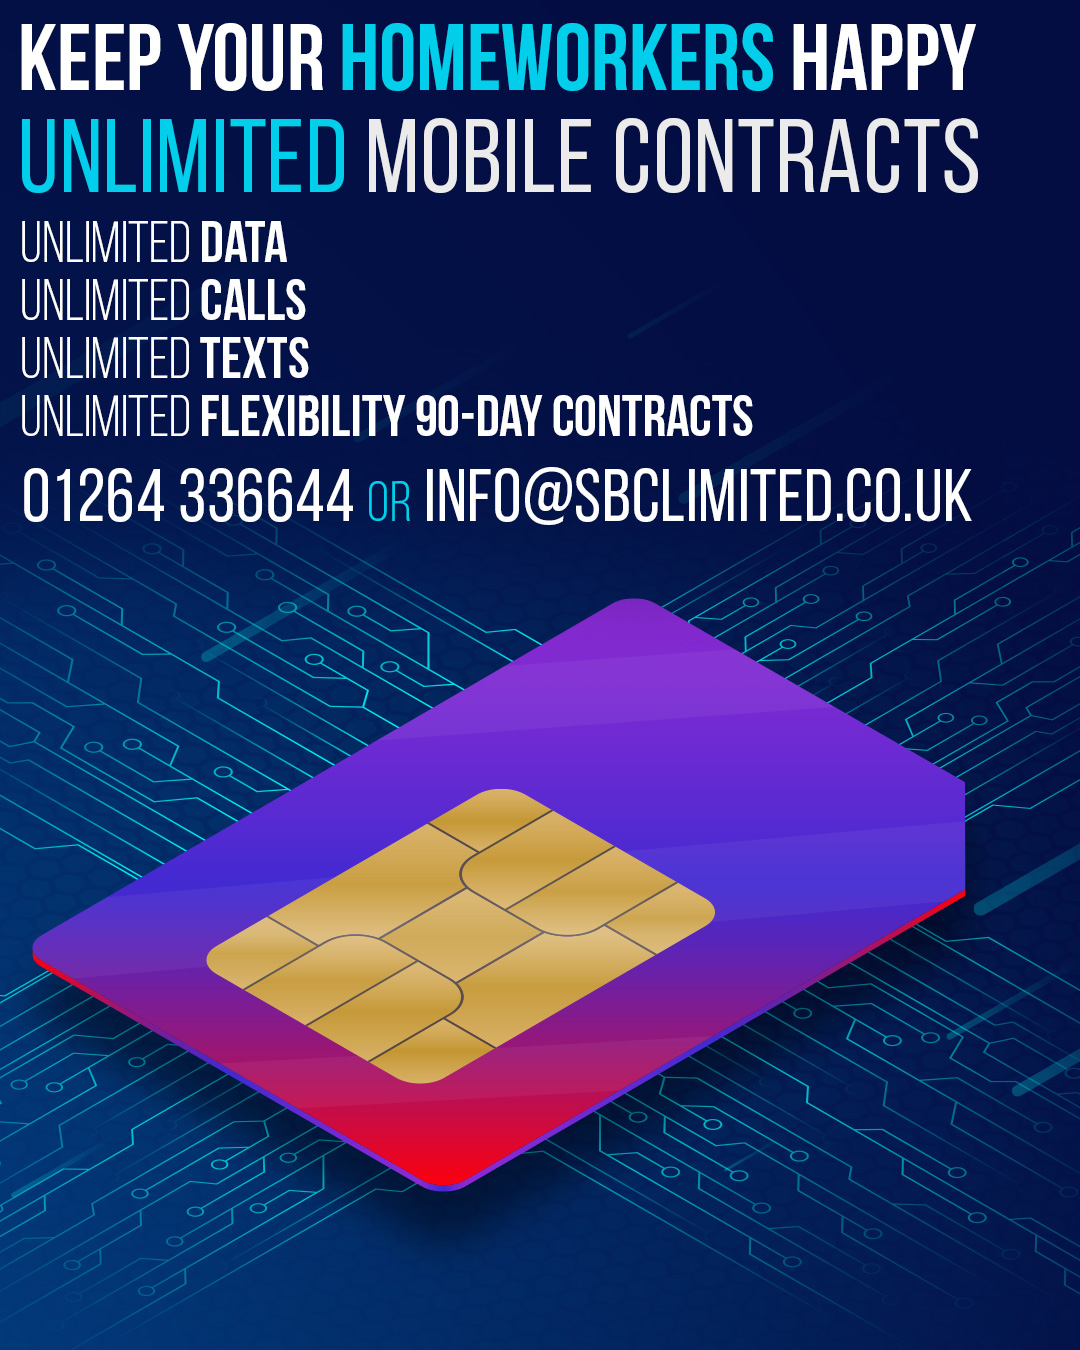 Unlimited Sim Only Deals from SBC include: Unlimited Data, Unlimited Calls, Unlimited Texts and Unlimited Flexibility.